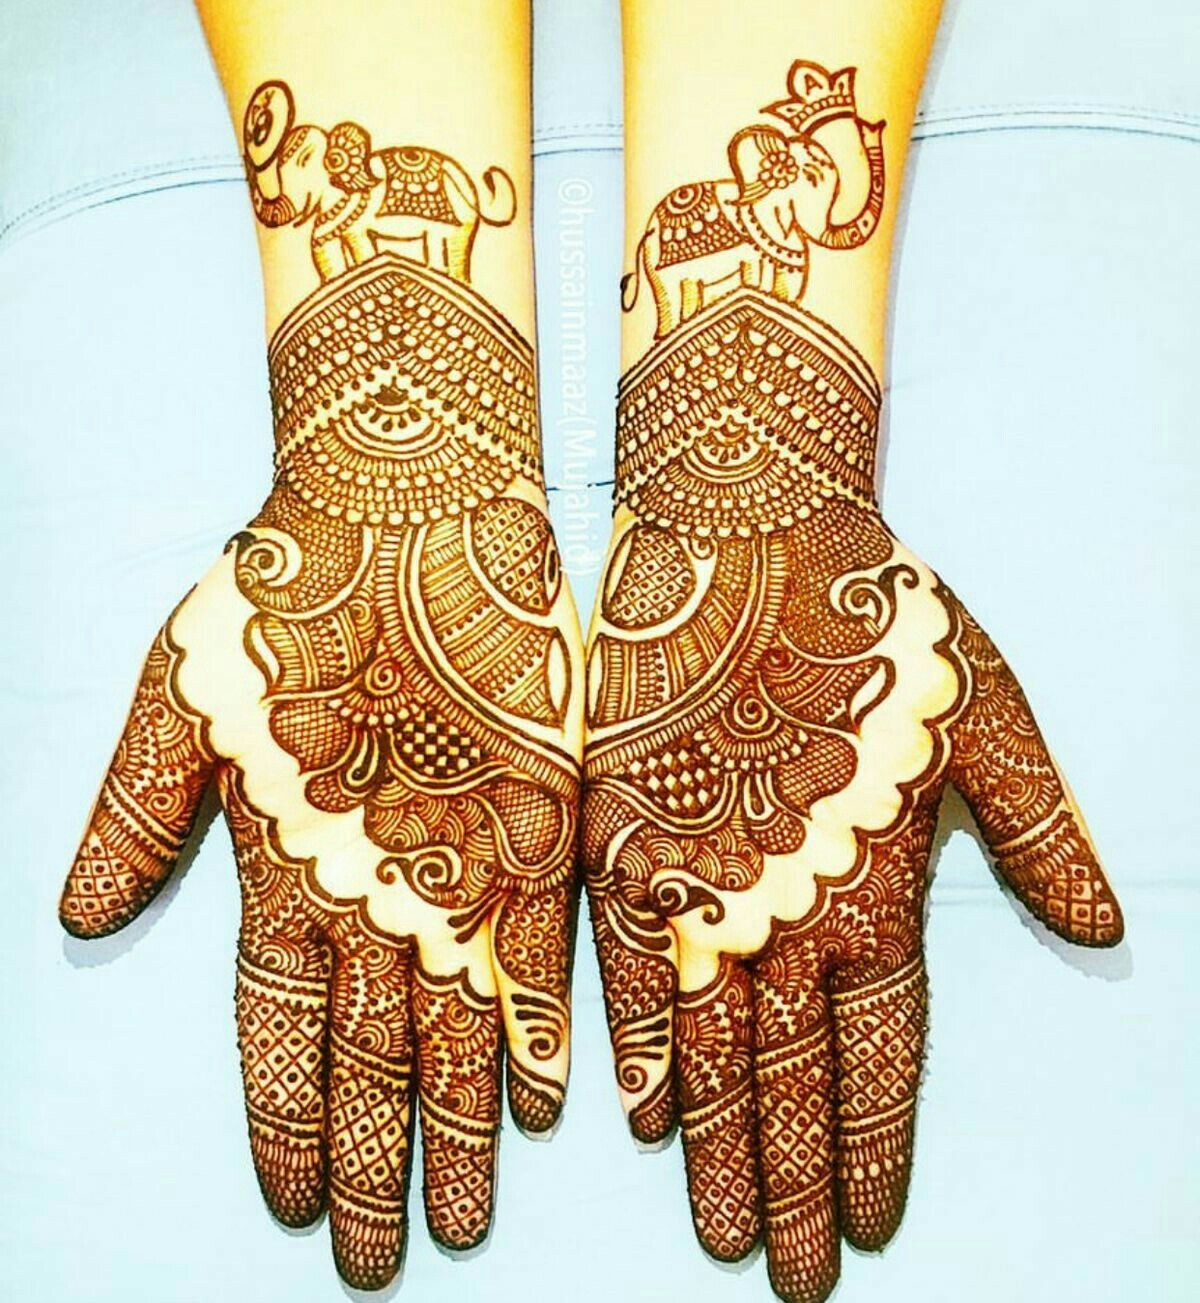 136 Best Images About Henna Inspiration Arms On Pinterest: Pin By Zubaida Sk On Mehendi (Henna)